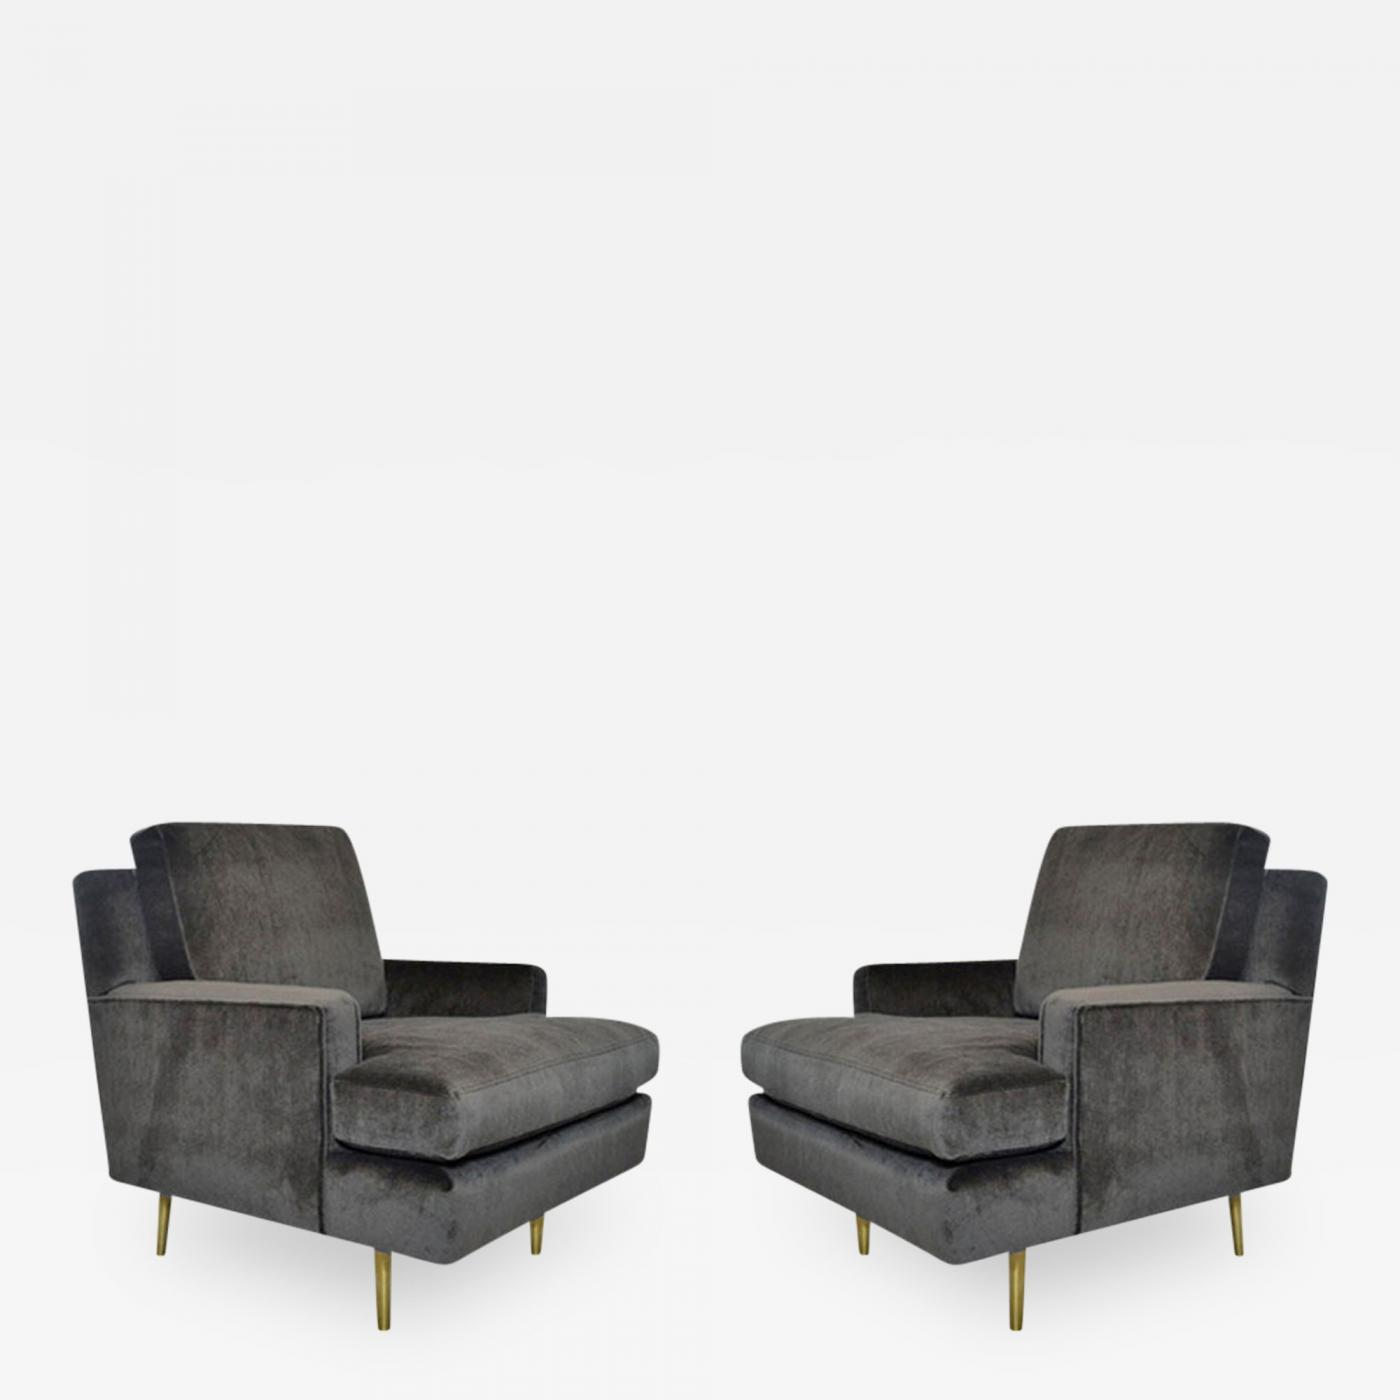 Edward Wormley Pair of Edward Wormley for Dunbar Lounge Chairs